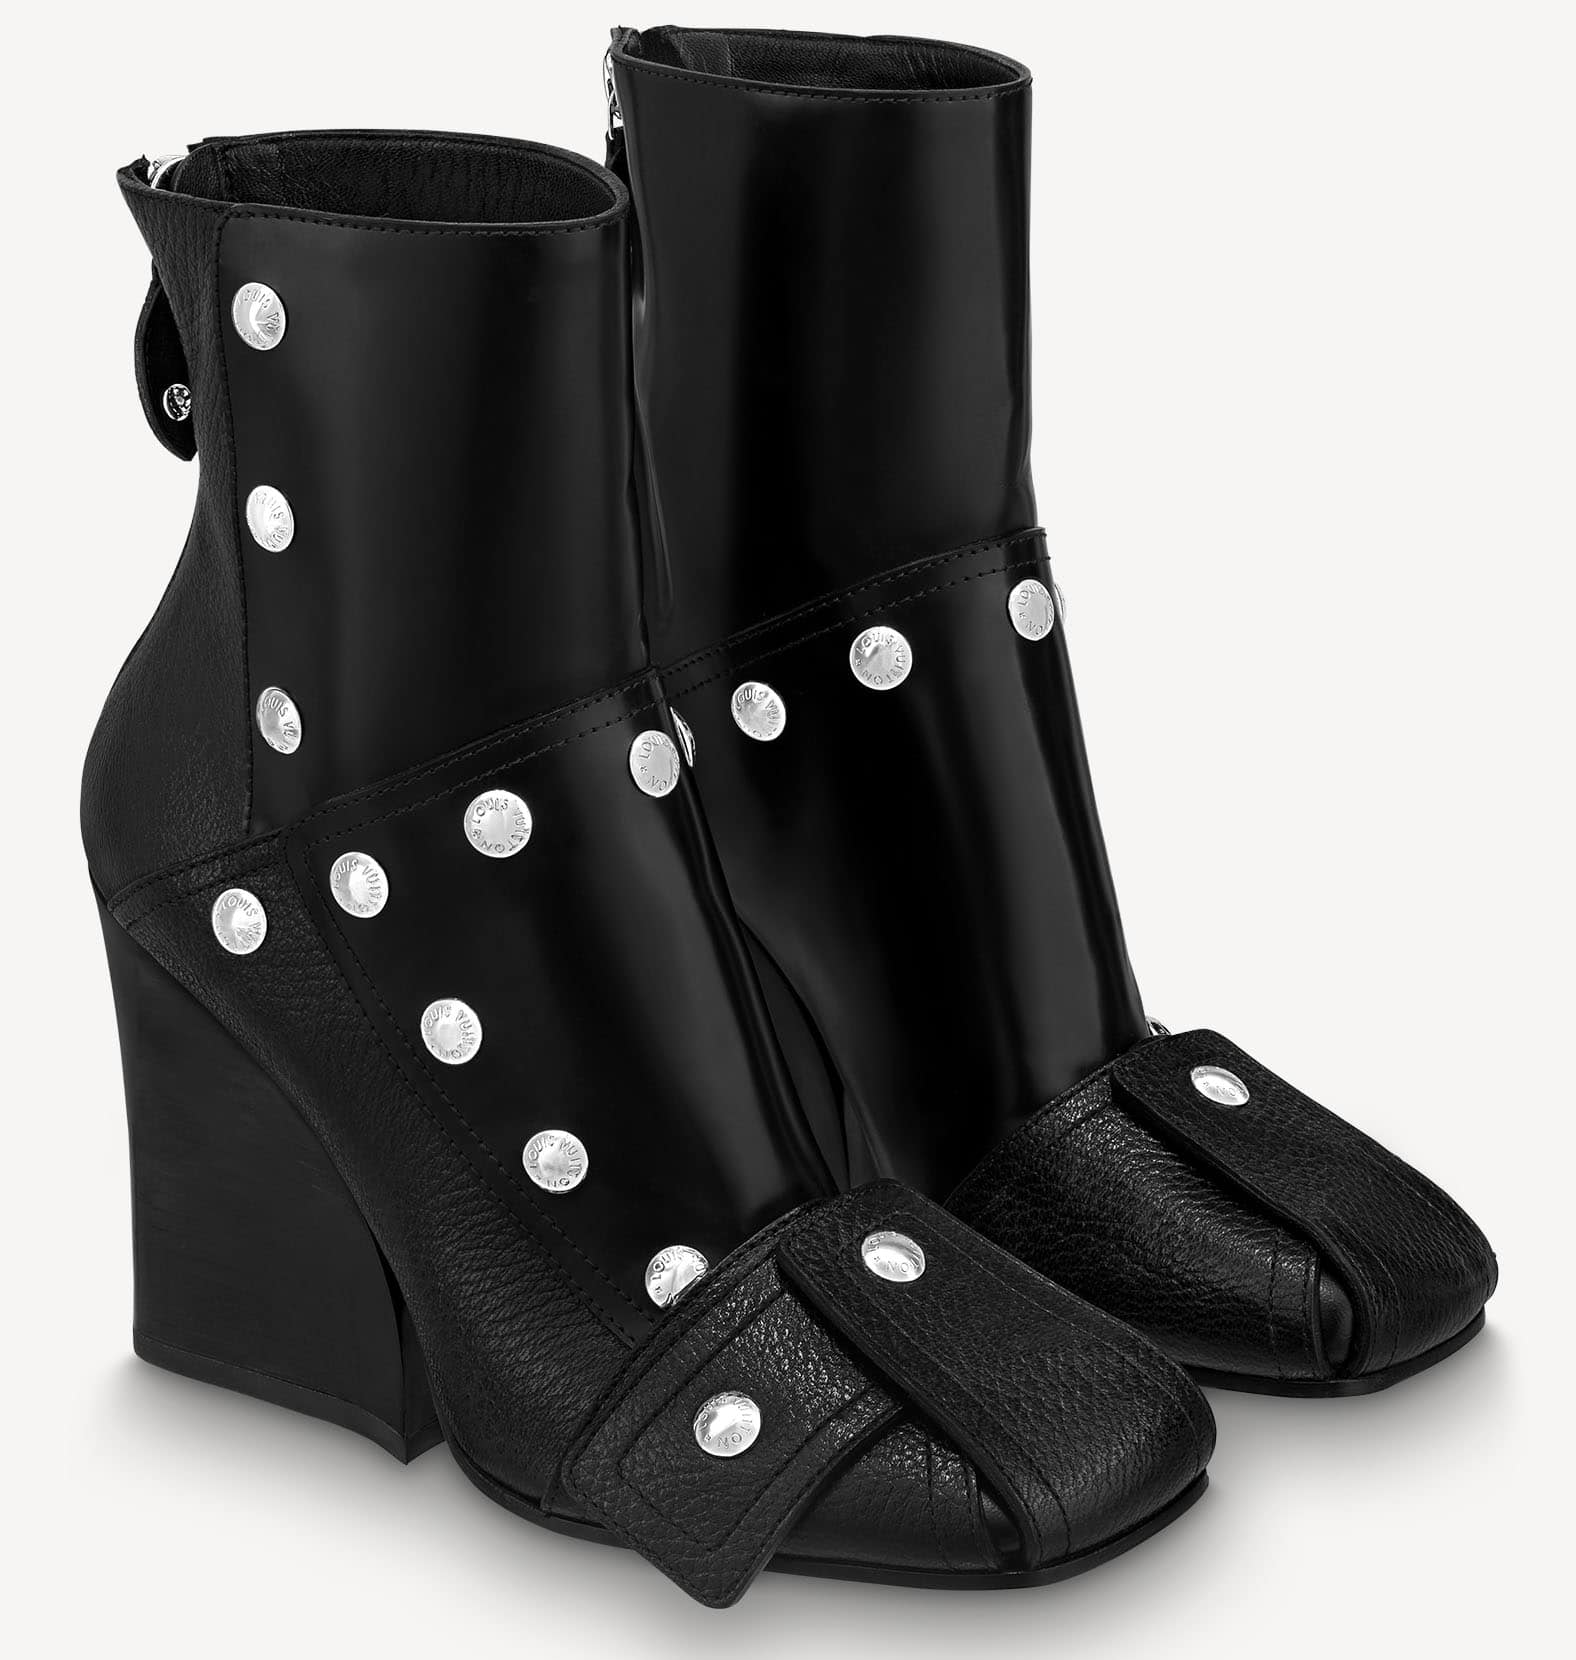 Louis Vuitton's Patti wedge boots feature a contemporary silhouette with engraved silver studs, square toes, and high wedge heels